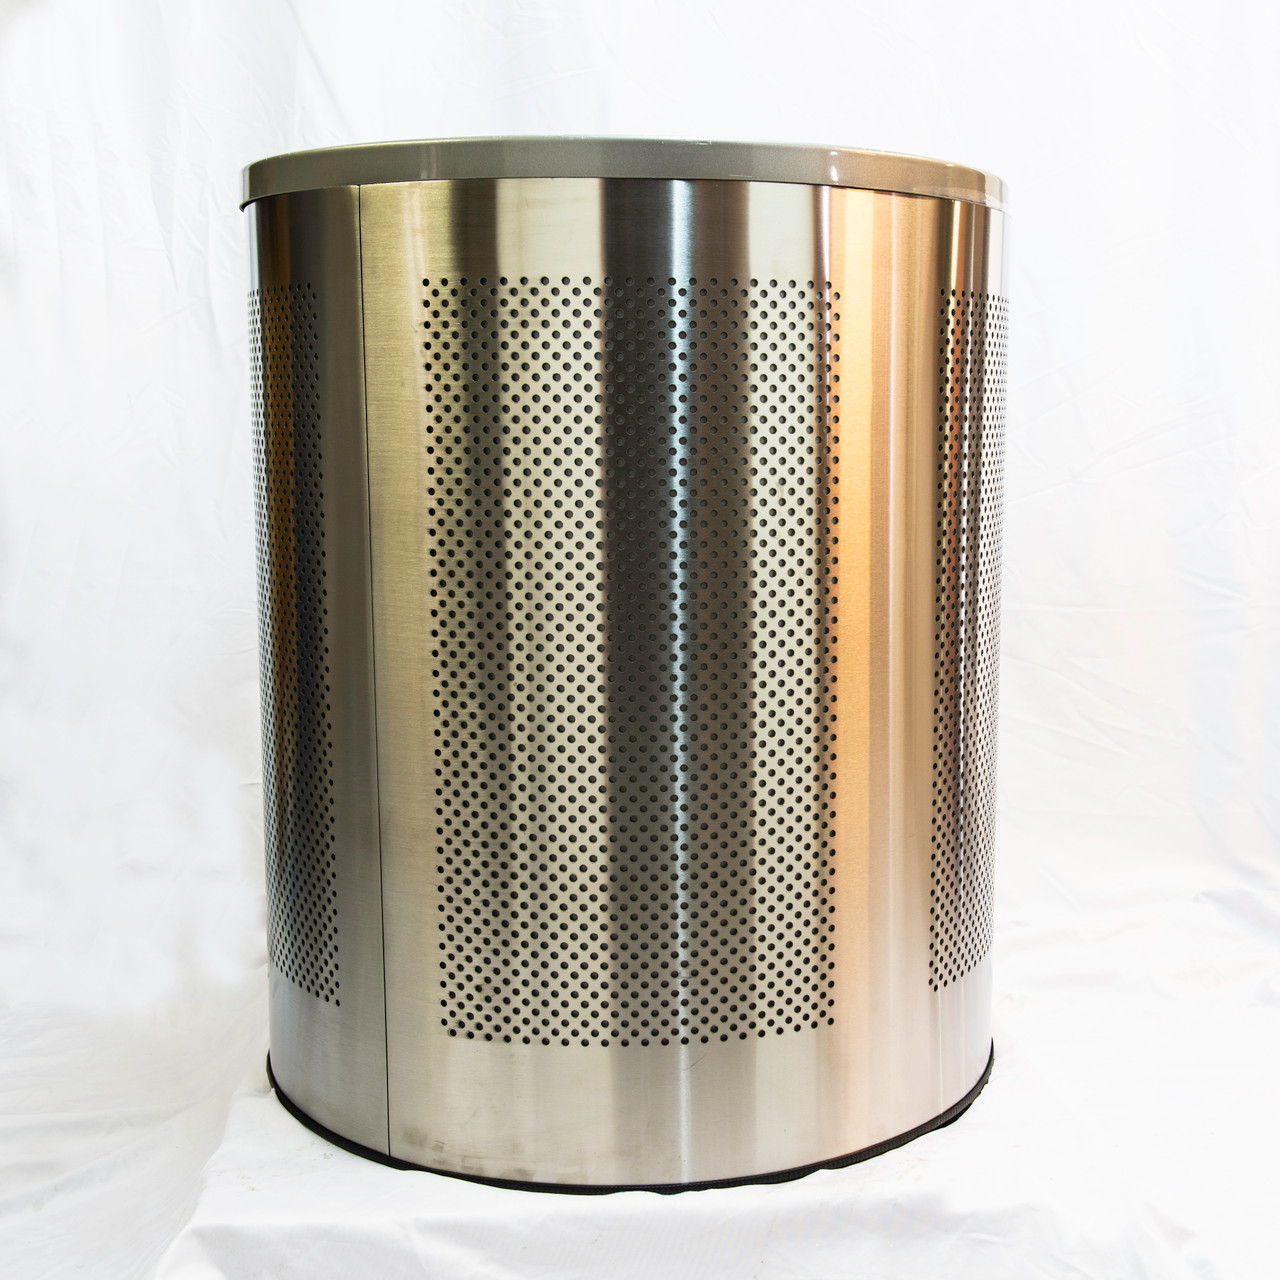 TC95 stainless steel metal blast resistant litter bin